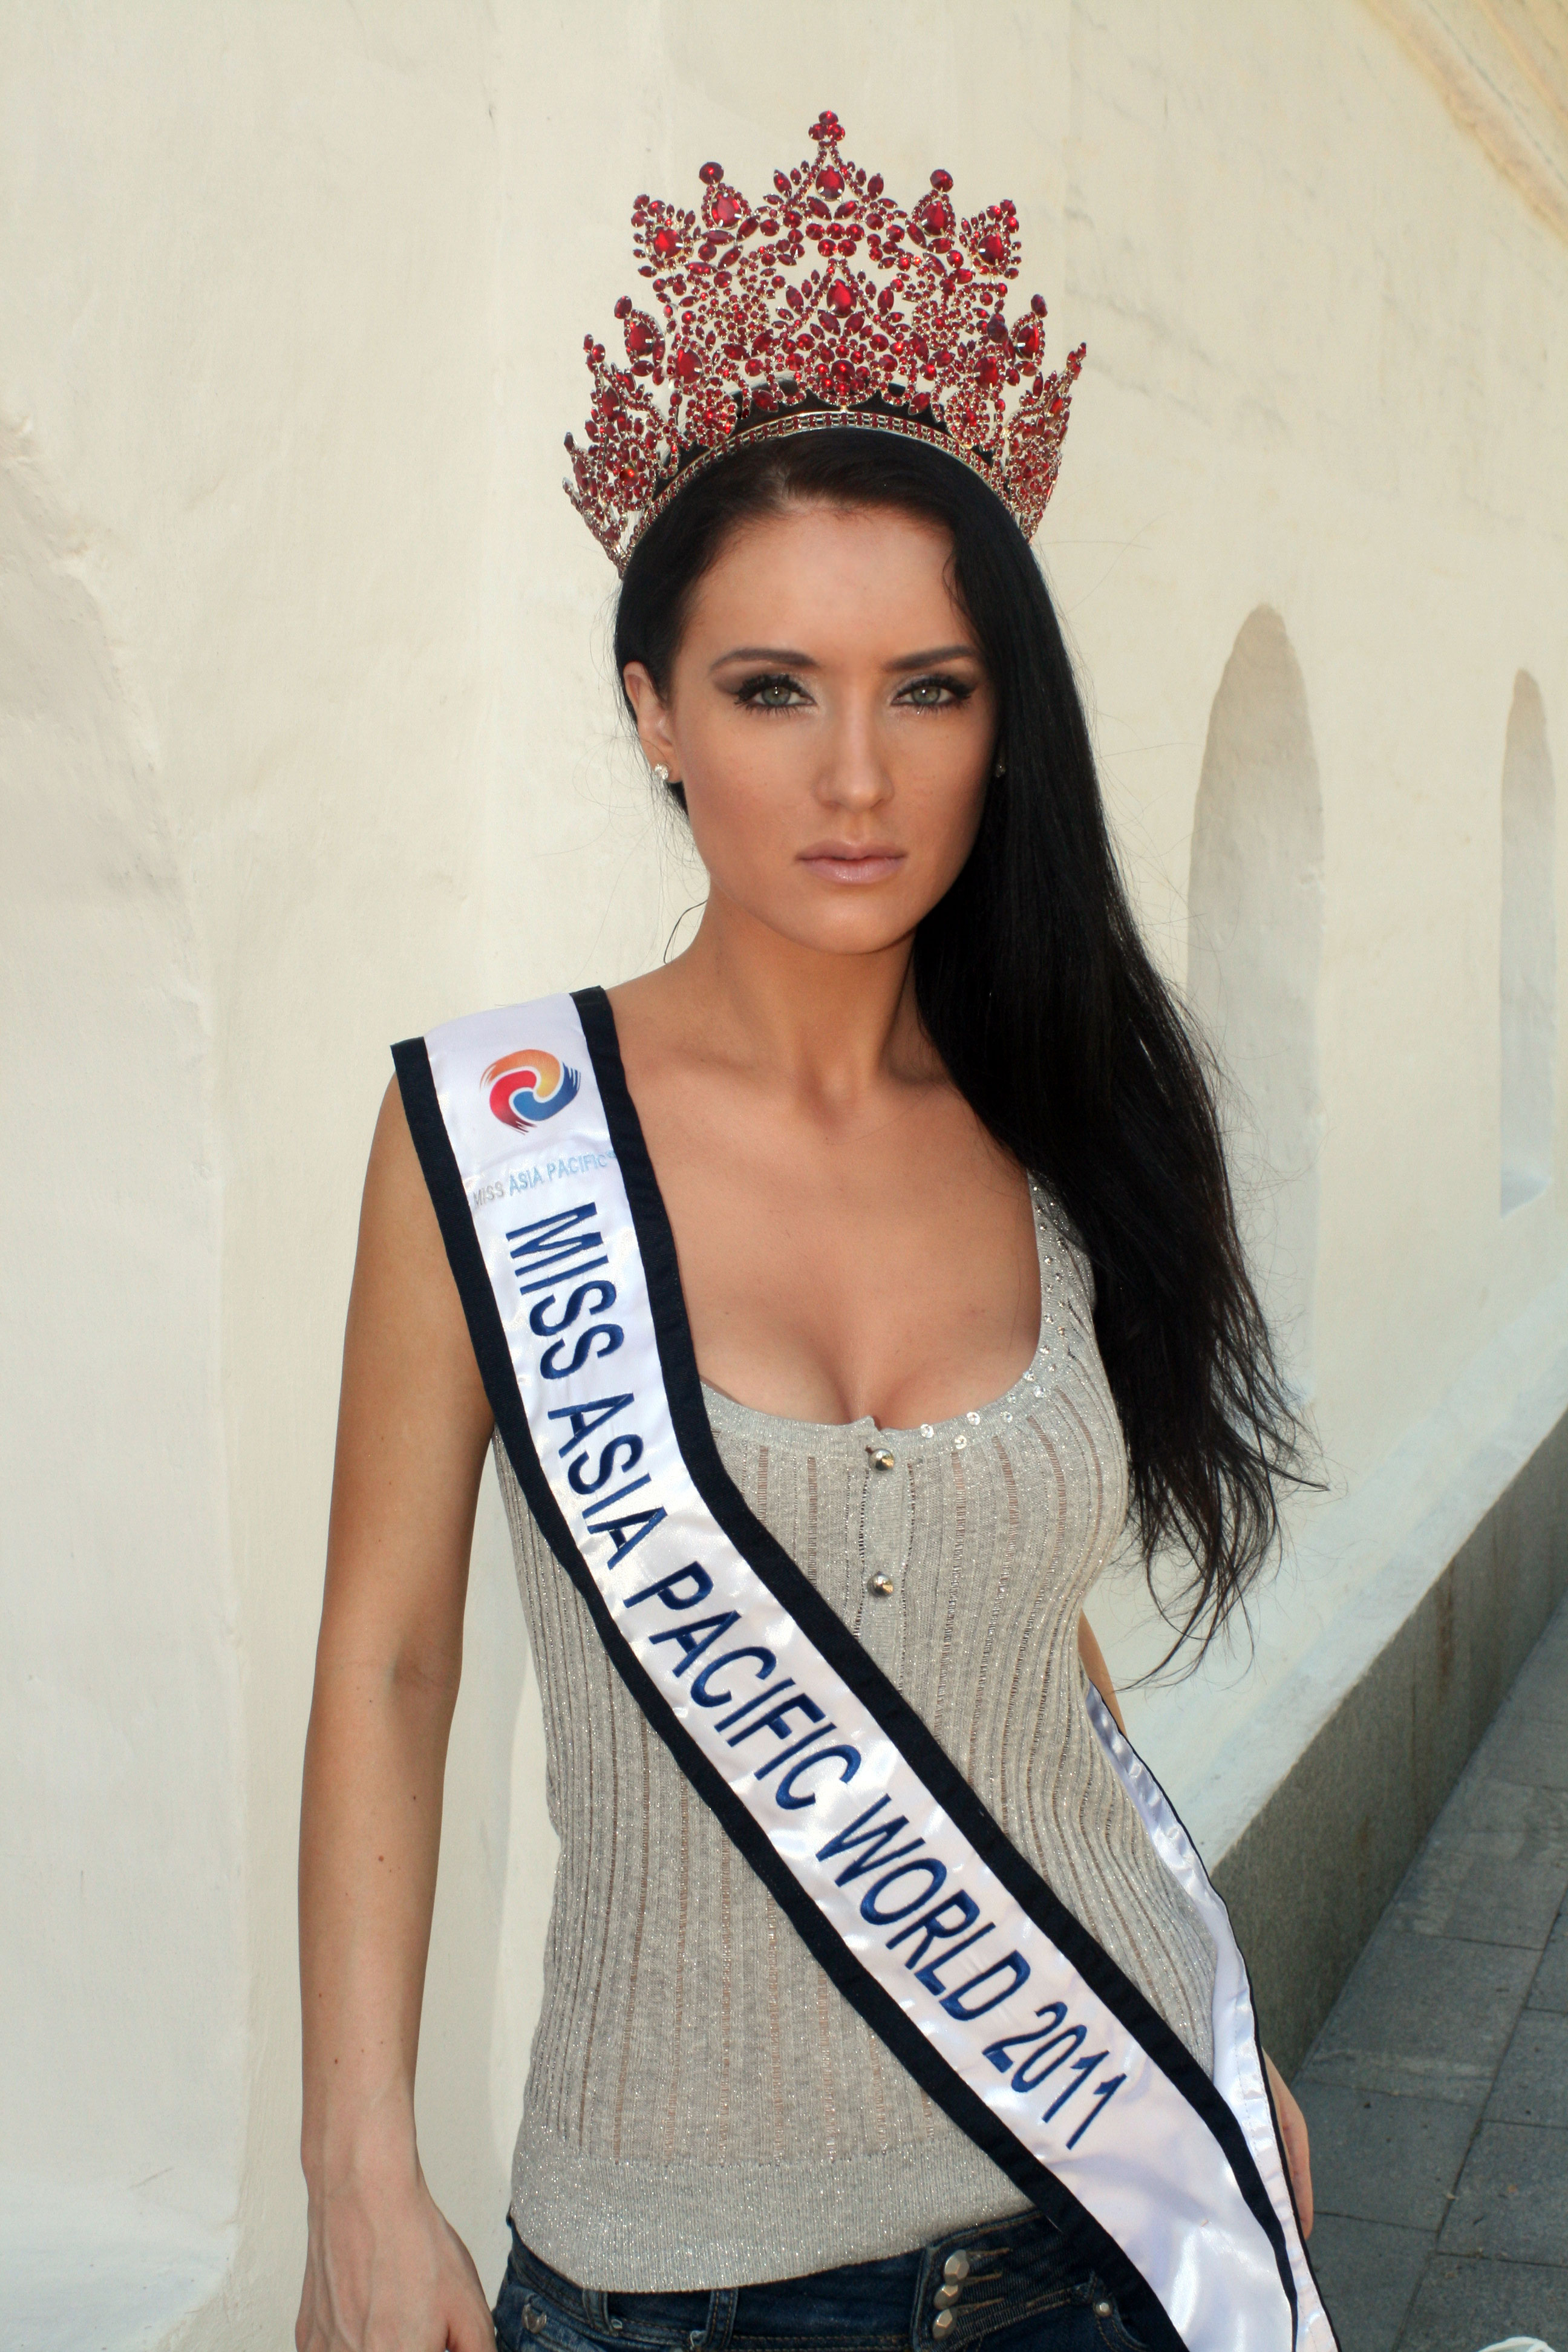 Miss Asia Pacific World 2011